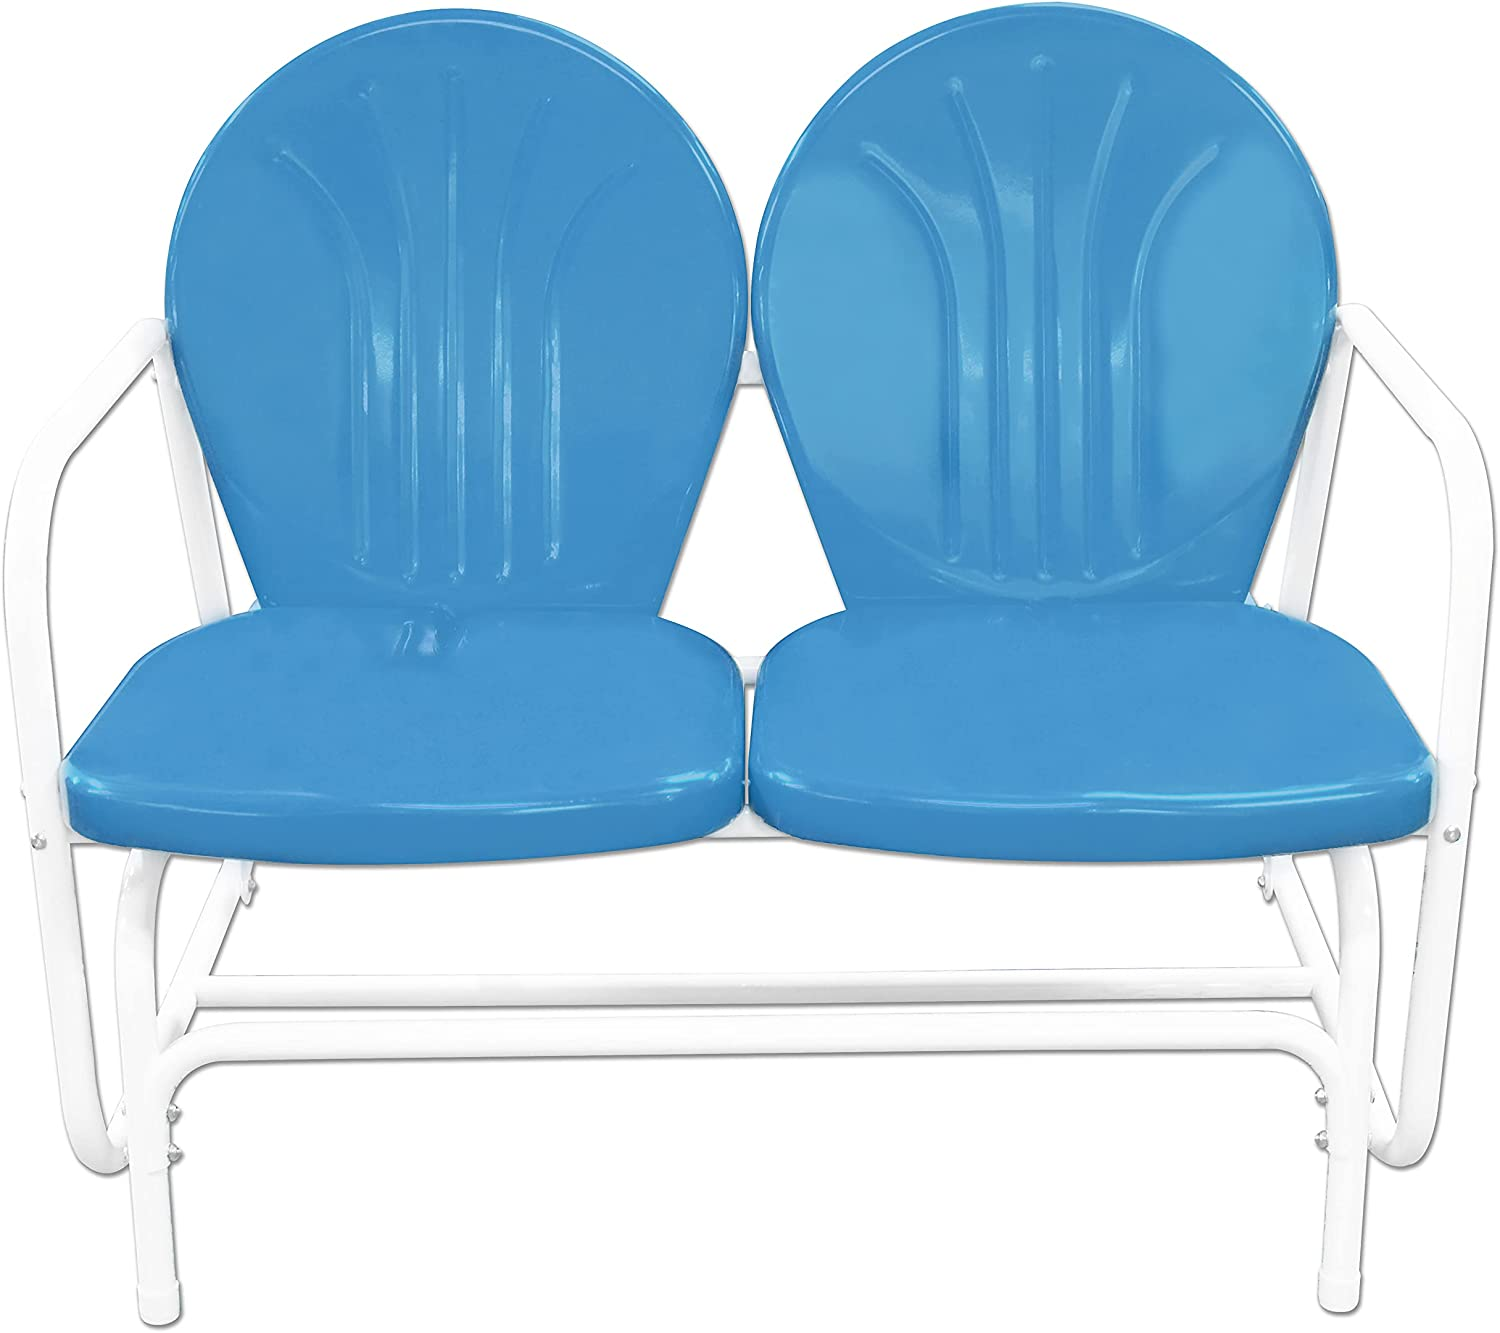 Leigh Country TX Seattle Mall 93515 Azure Retro Glider Double White Max 83% OFF